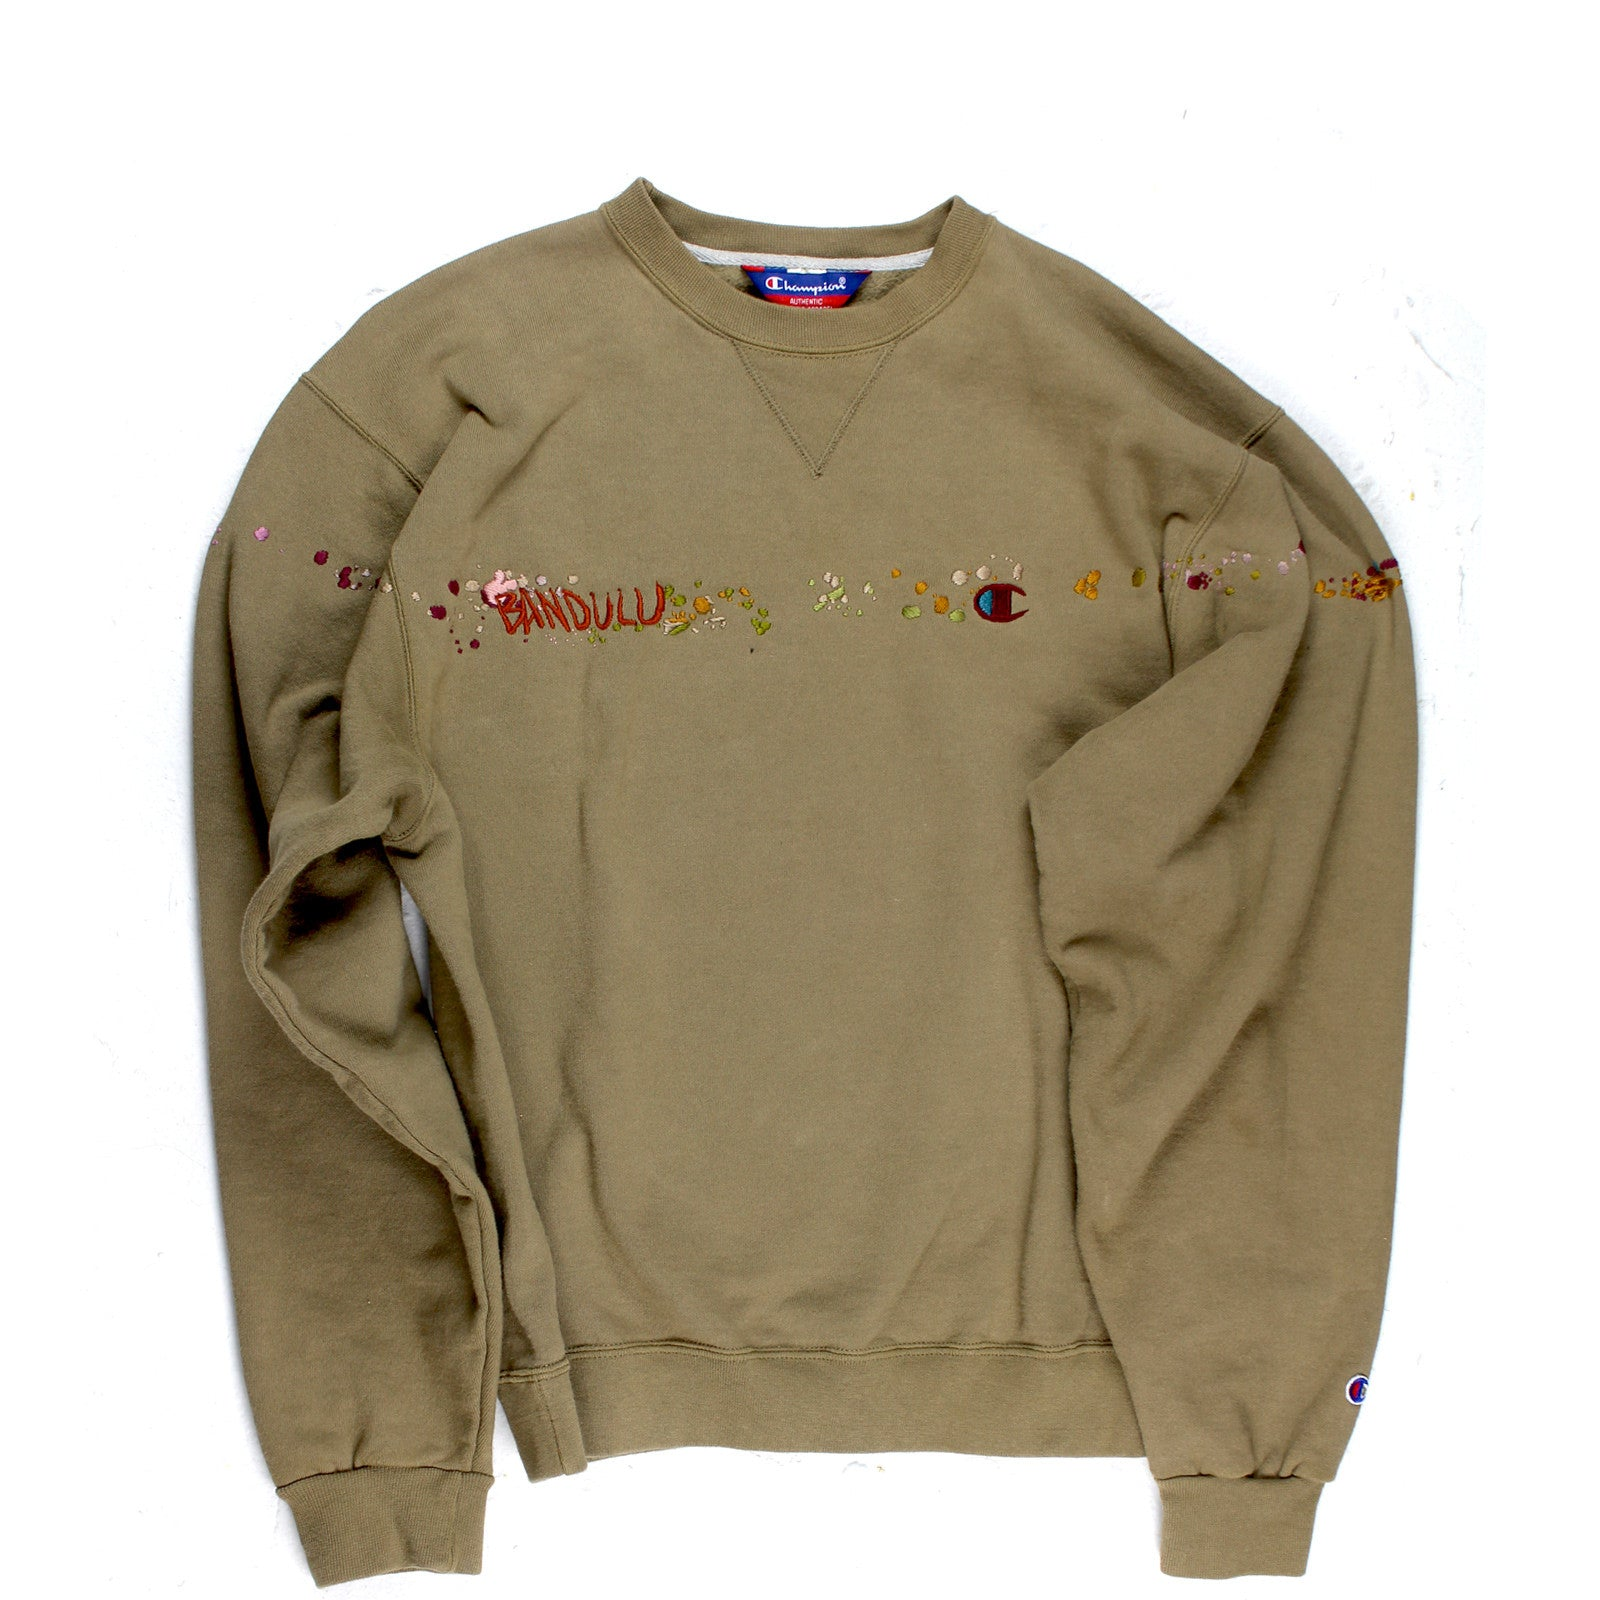 "BANDULU ""ALL GOOD ACAPULCO"" VINTAGE CHAMPION CREWNECK"